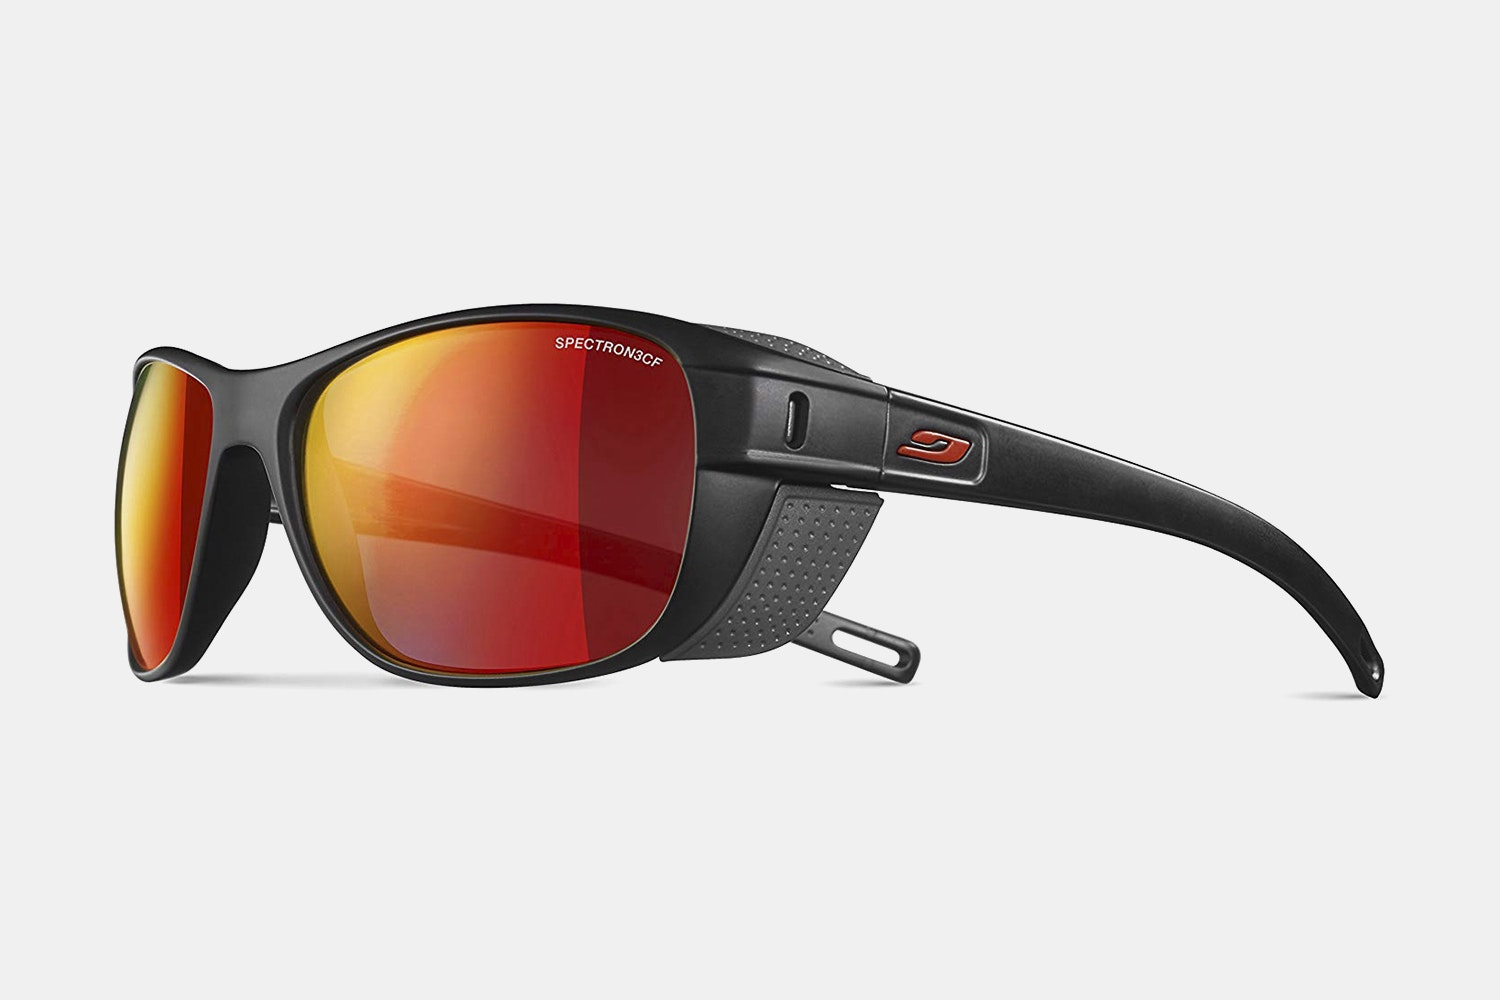 Camino Sunglasses Black/Red Frame With Spectron 3 CF